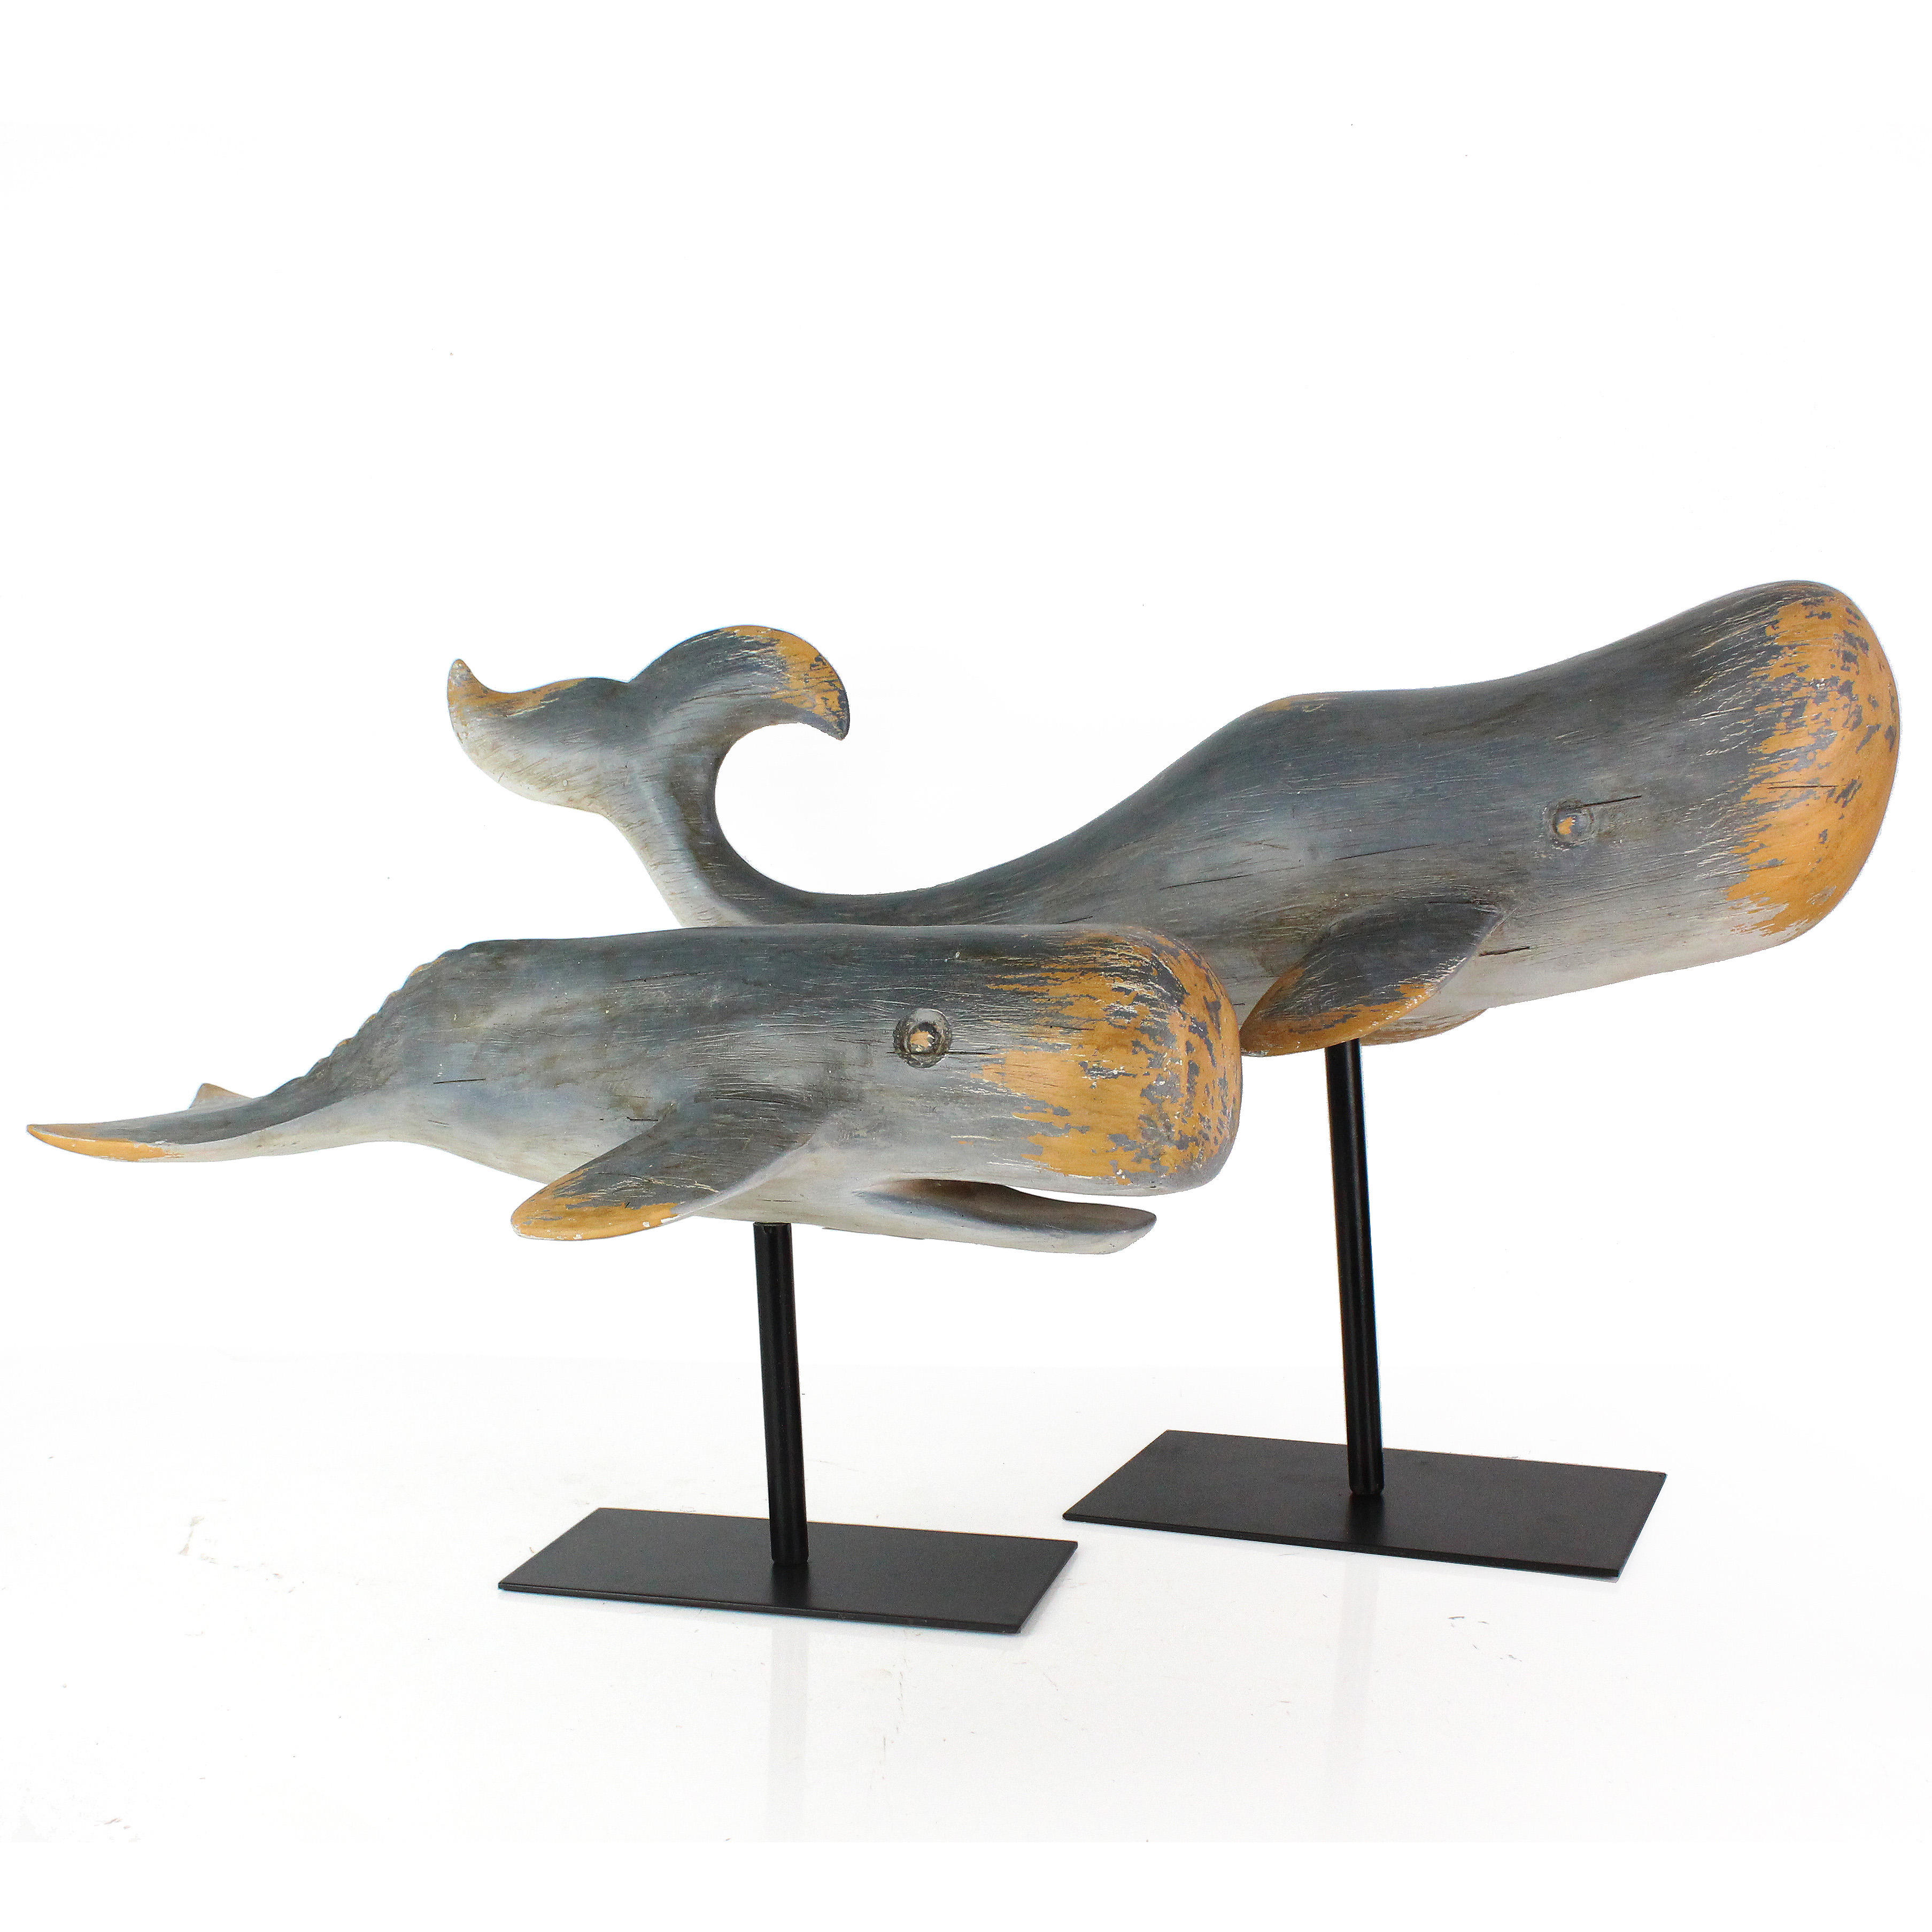 Artificial Resin Imitation Wooden Whale Sculpture with Metal Base Creative Gift